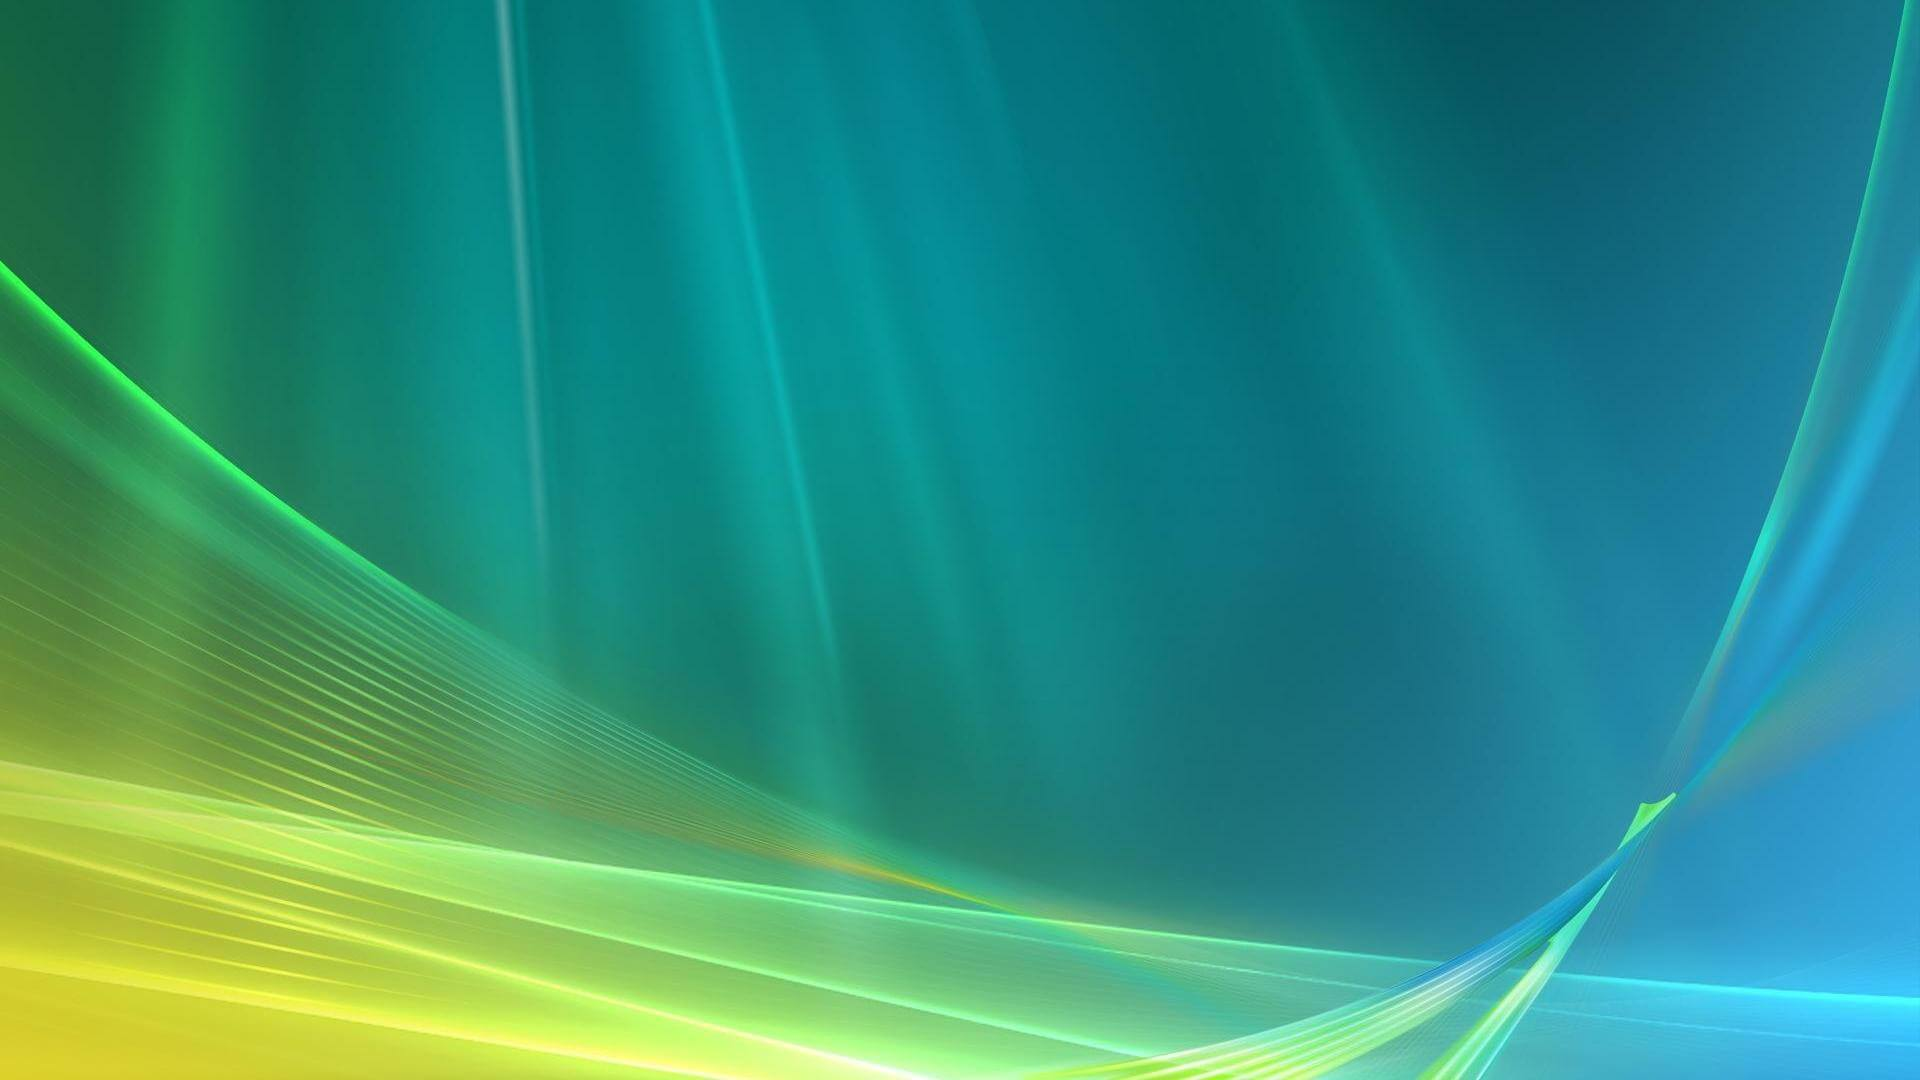 Wallpapers for vista windows 7